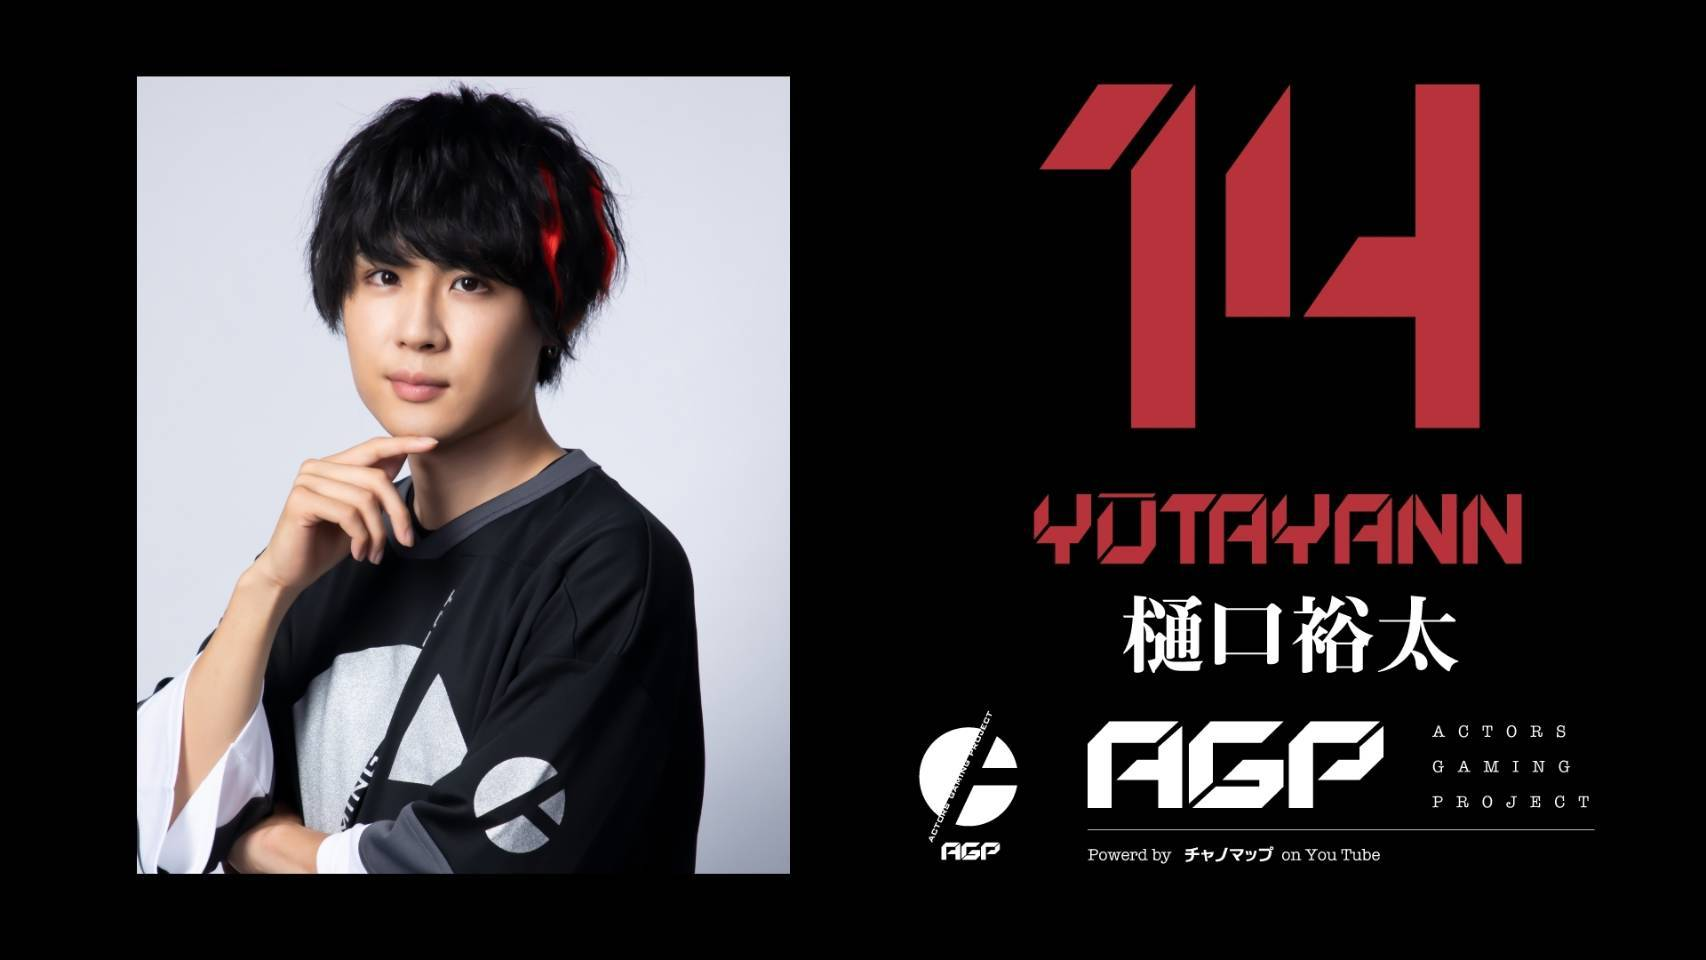 「ACTORS GAMING PROJECT」 14 樋口裕太